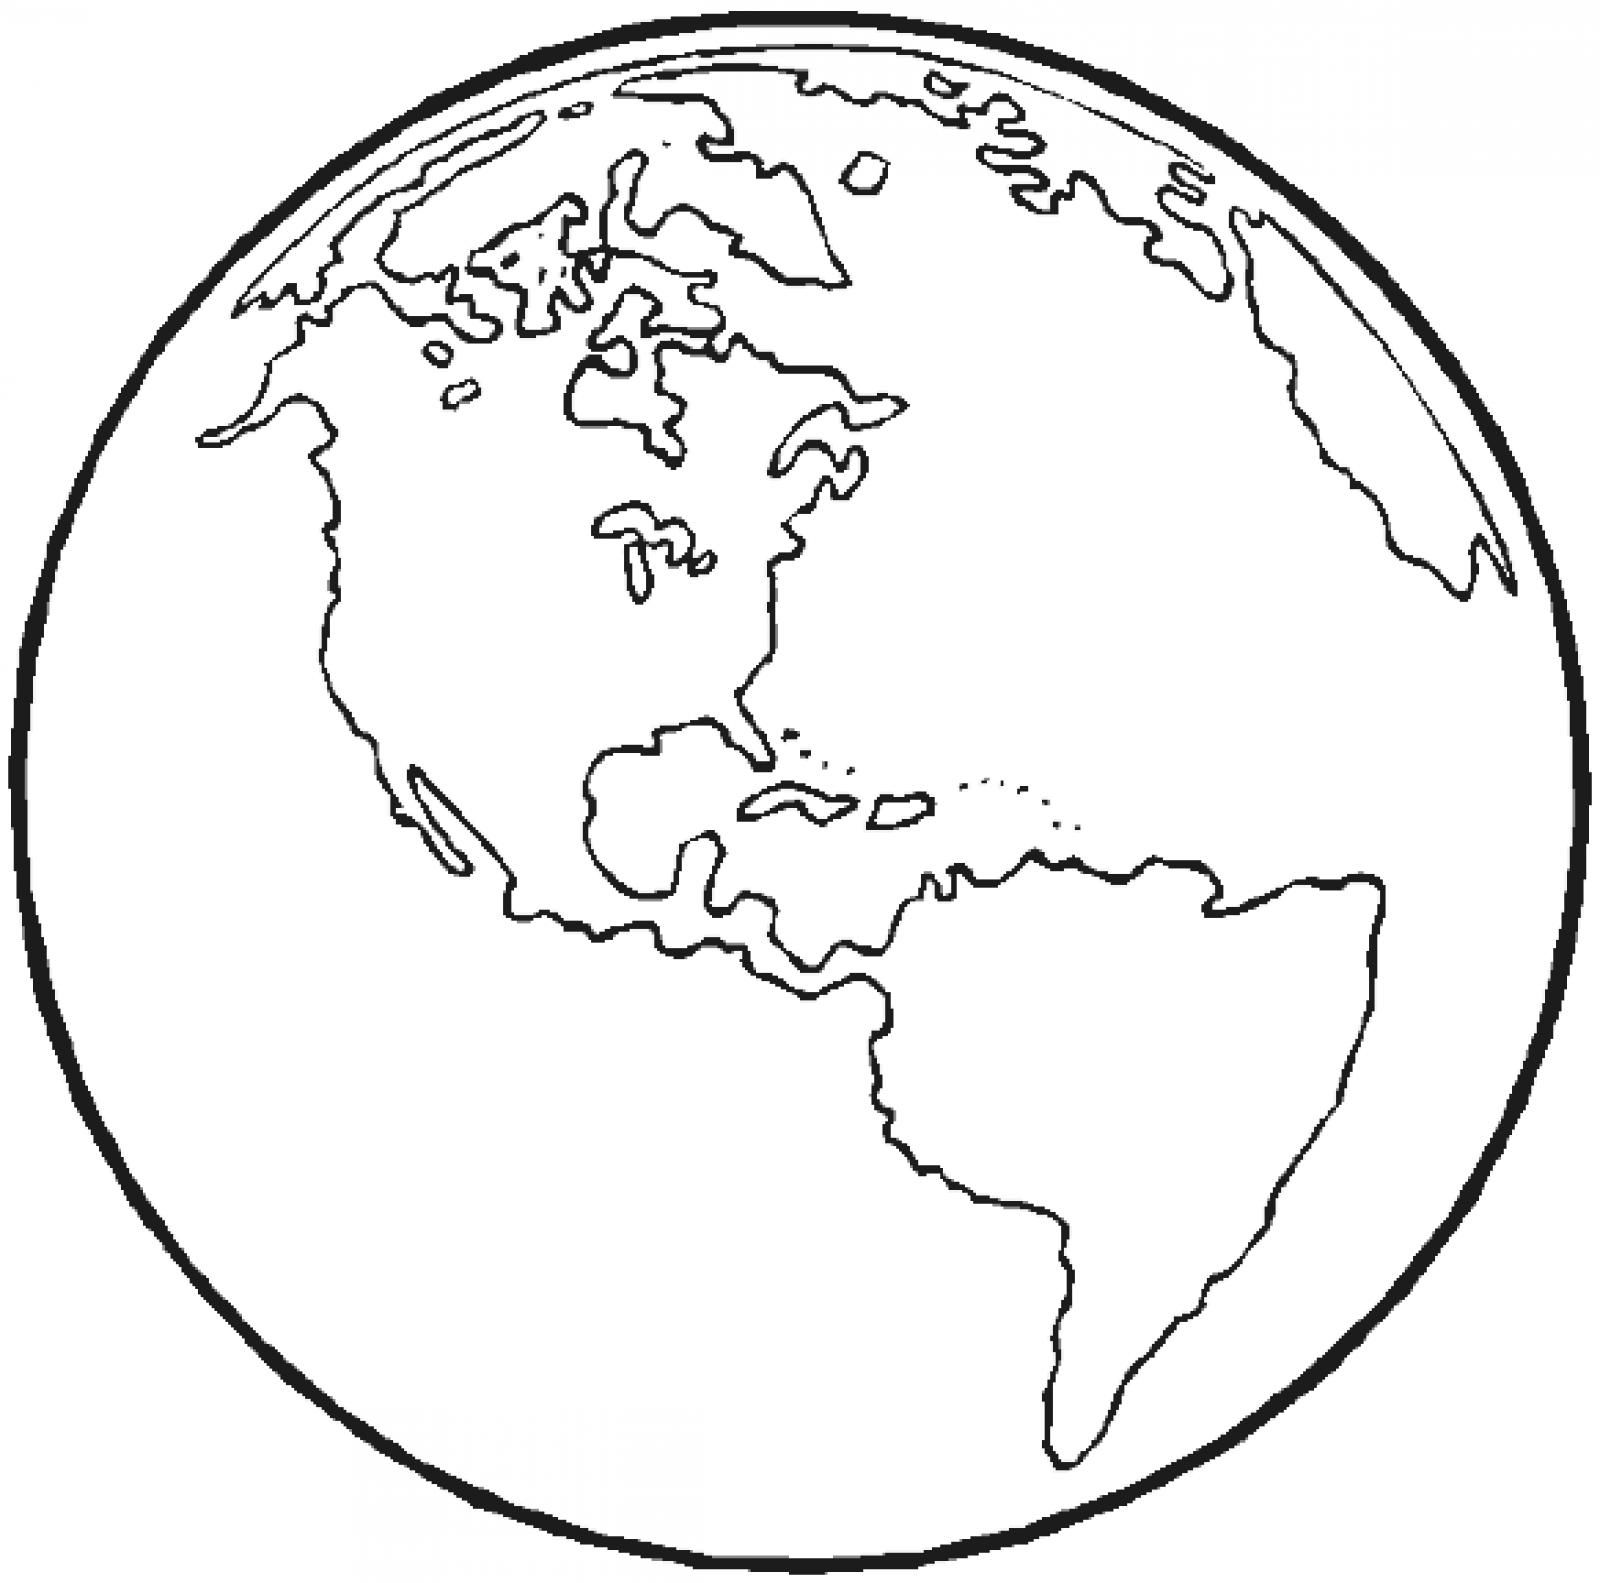 Free Printable Earth Coloring Pages For Kids Earth day